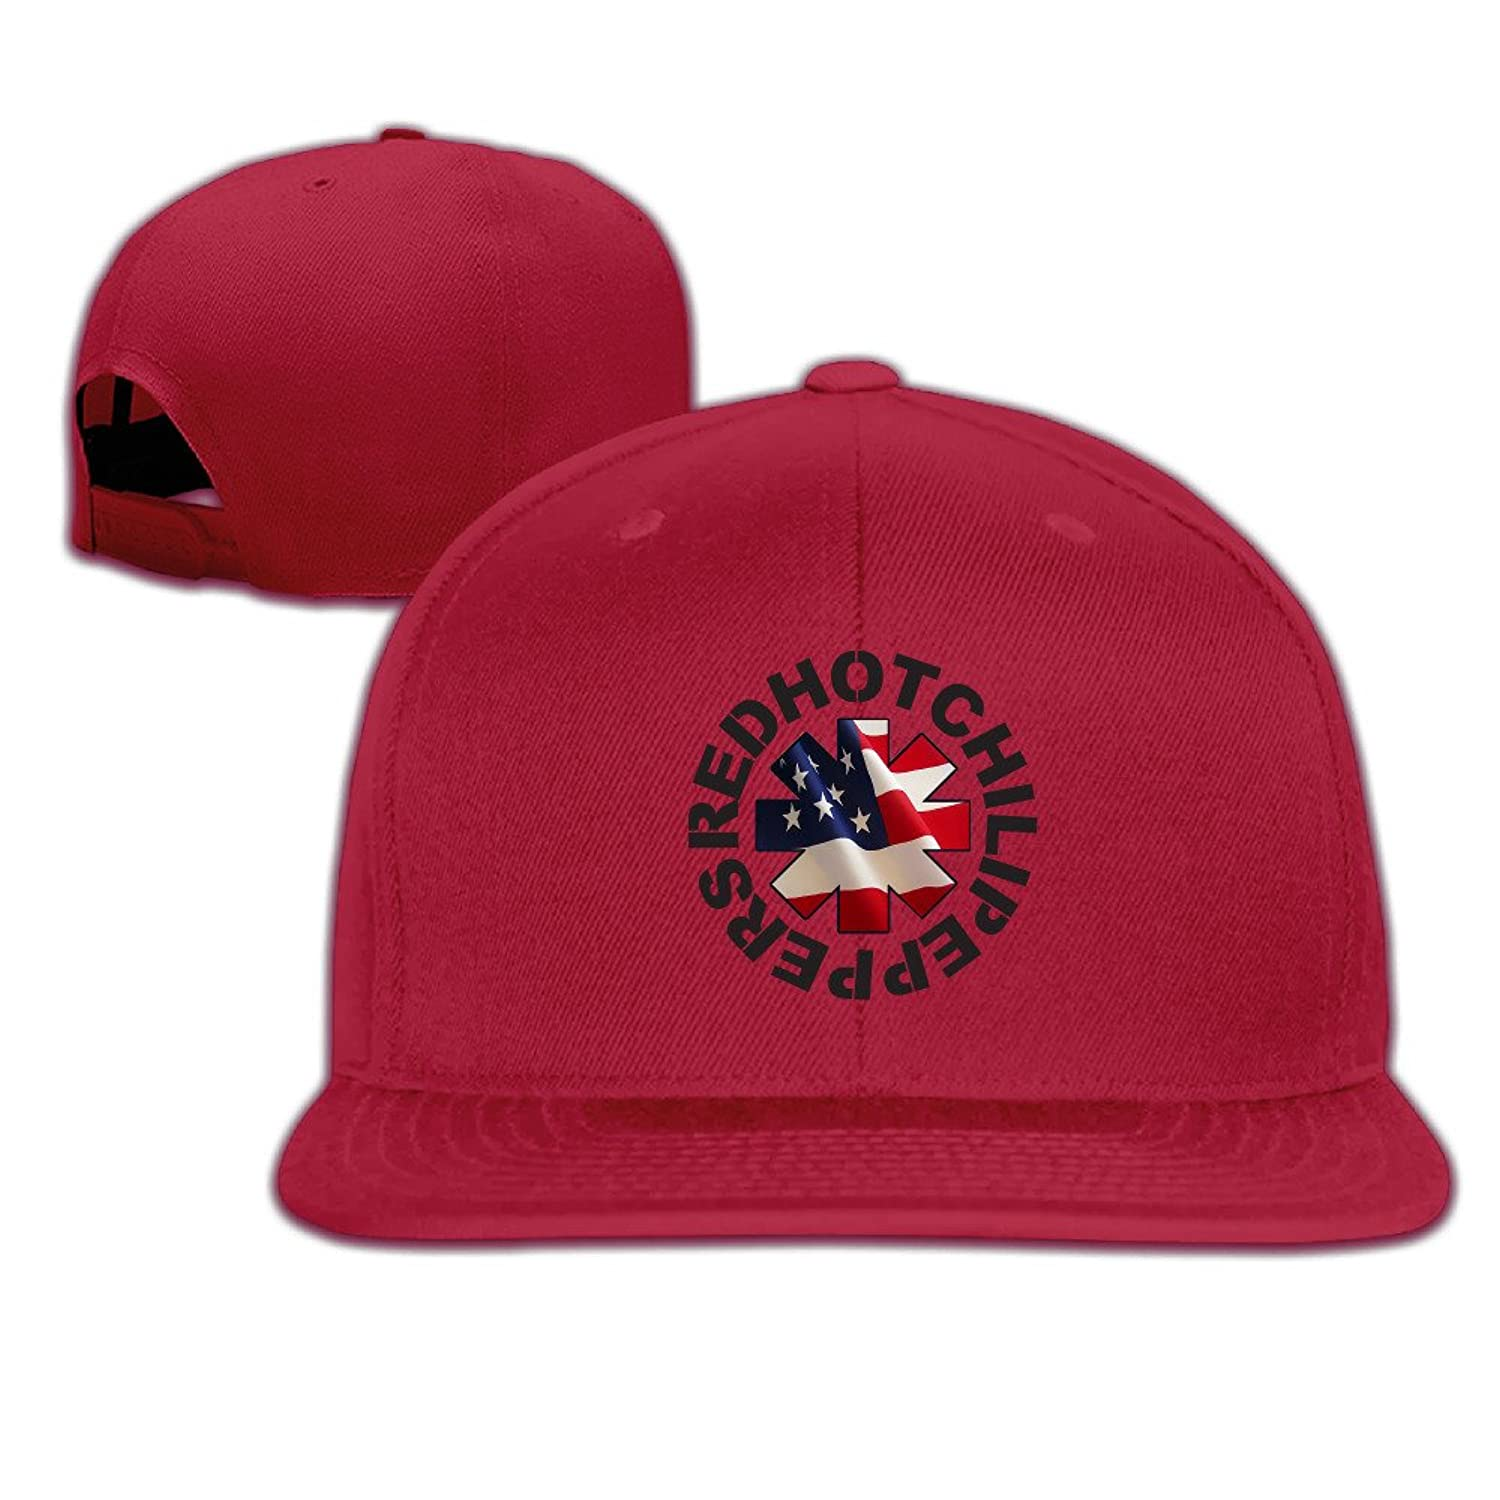 MYDT1 Unisex Red Hot Chili Peppers Flat Baseball Caps Hats